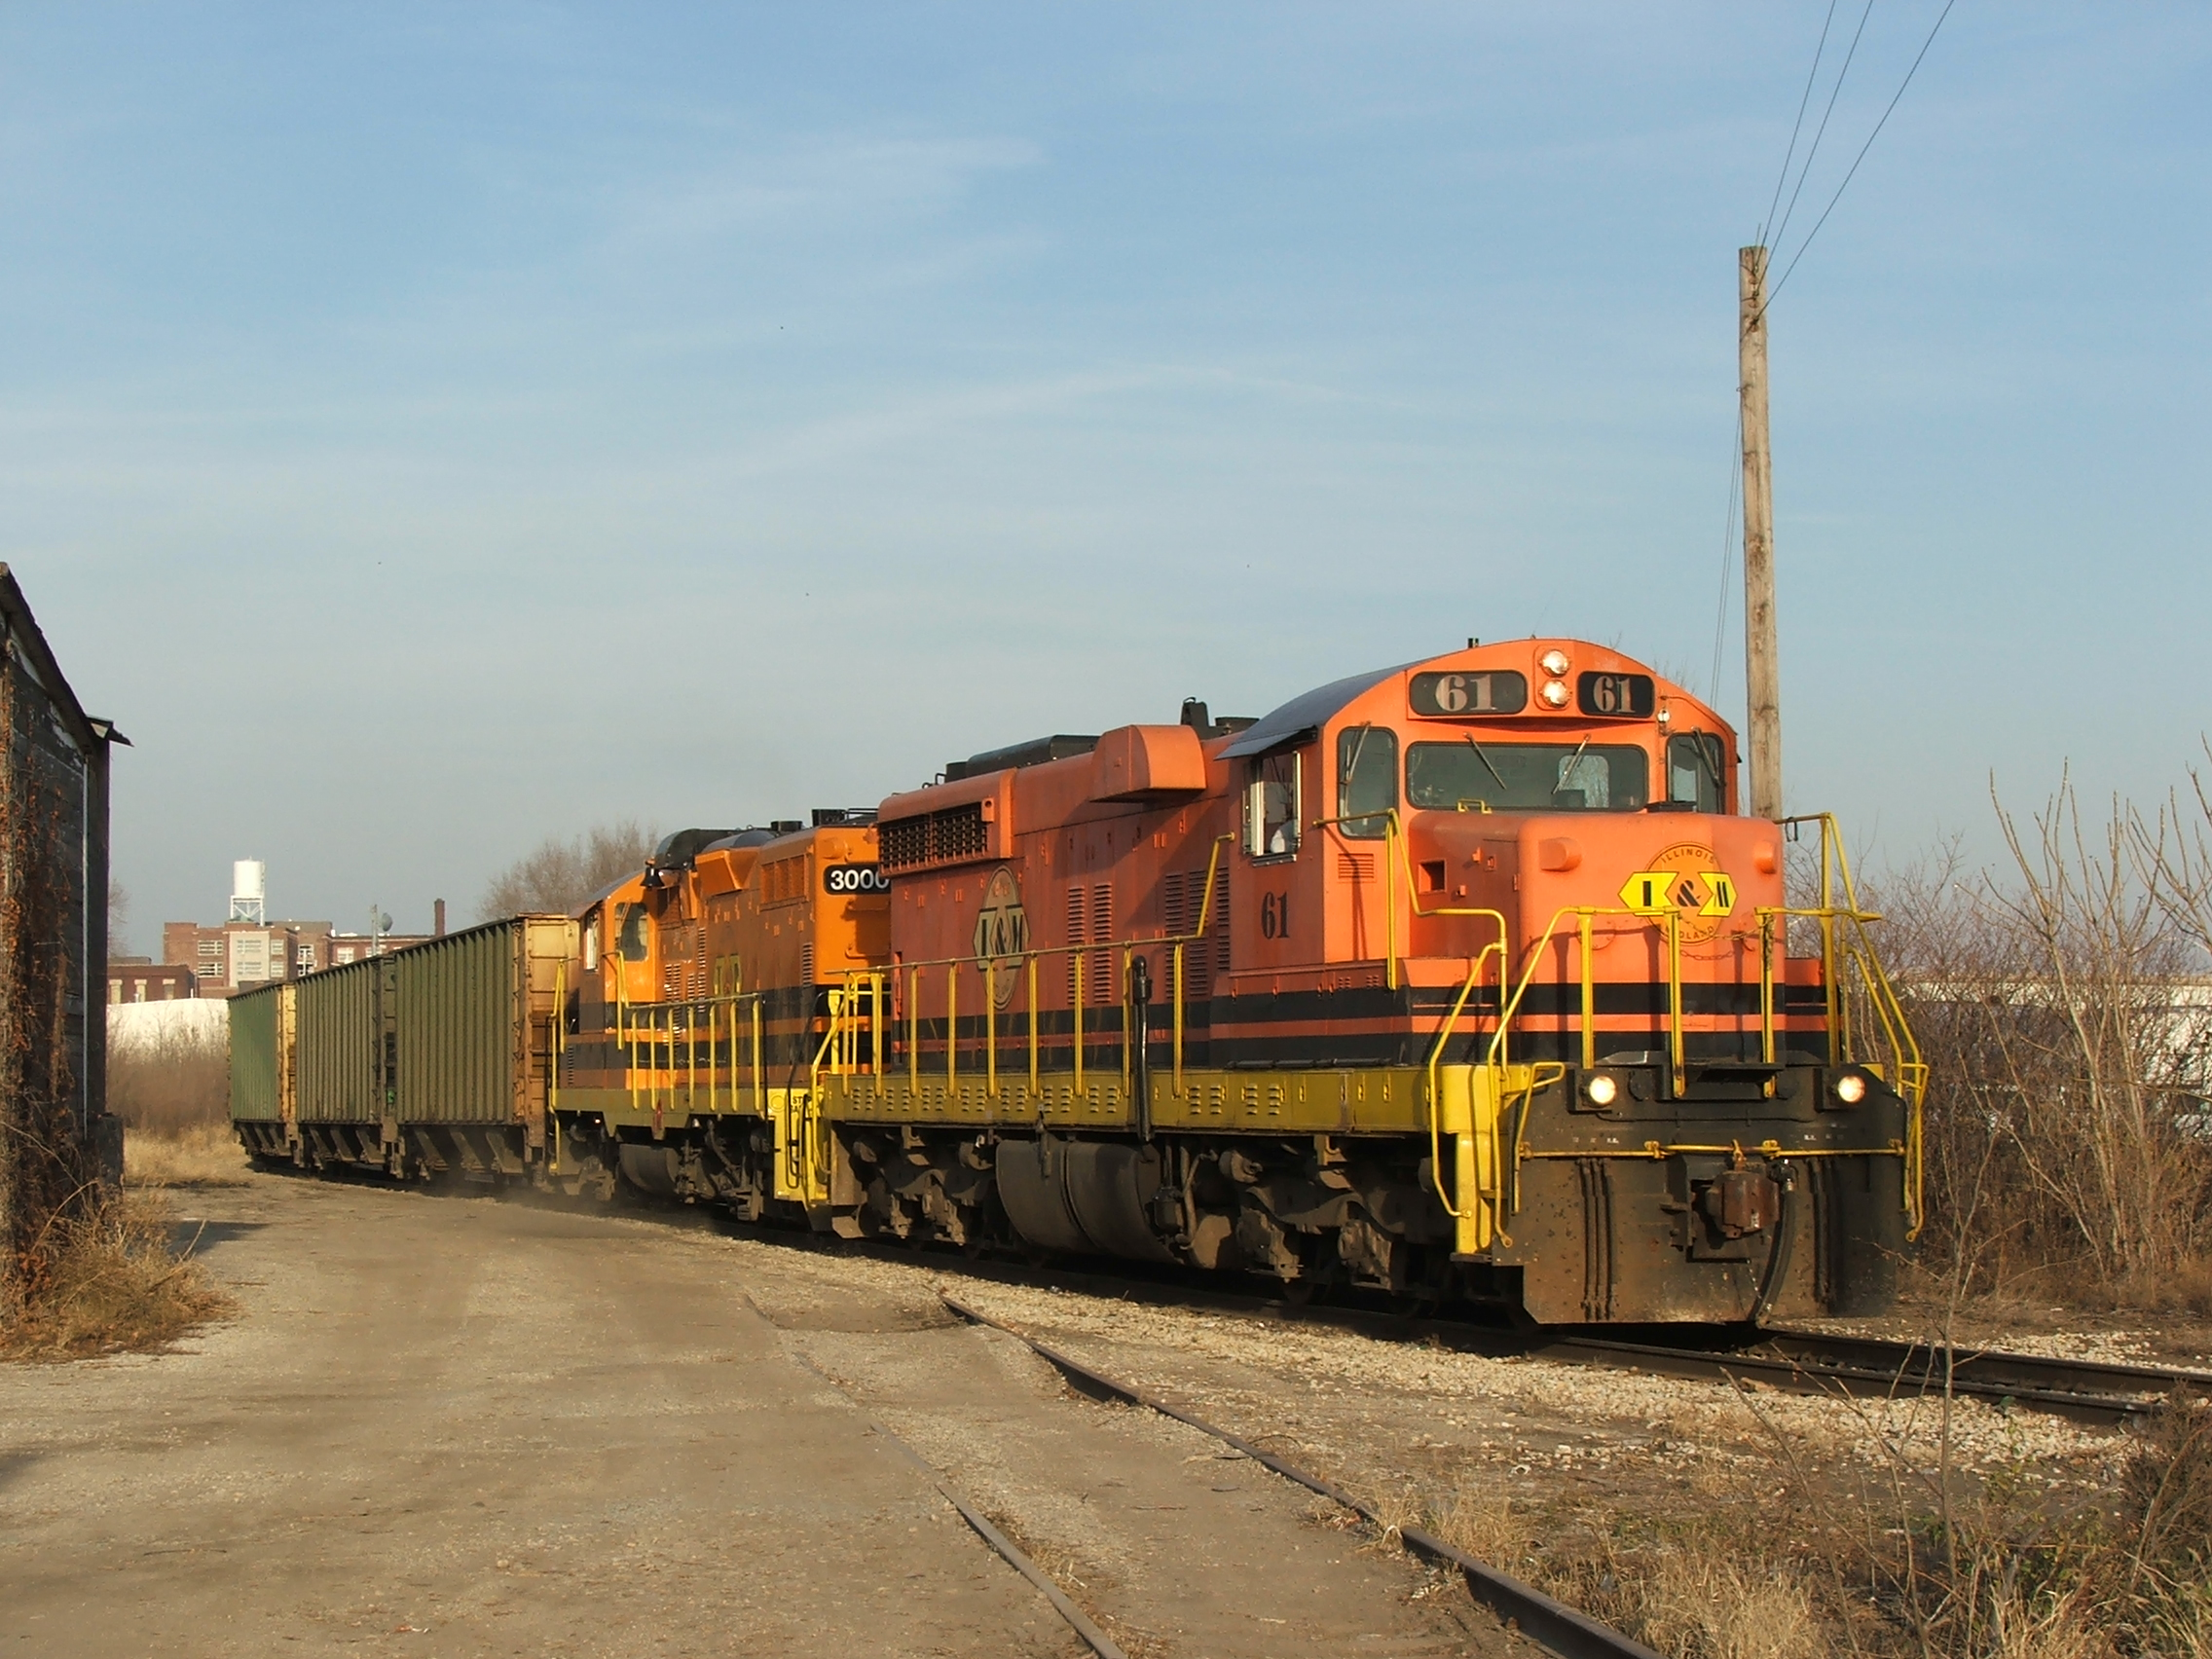 The TZPR coal train heads through the industrial East Peoria landscapes...